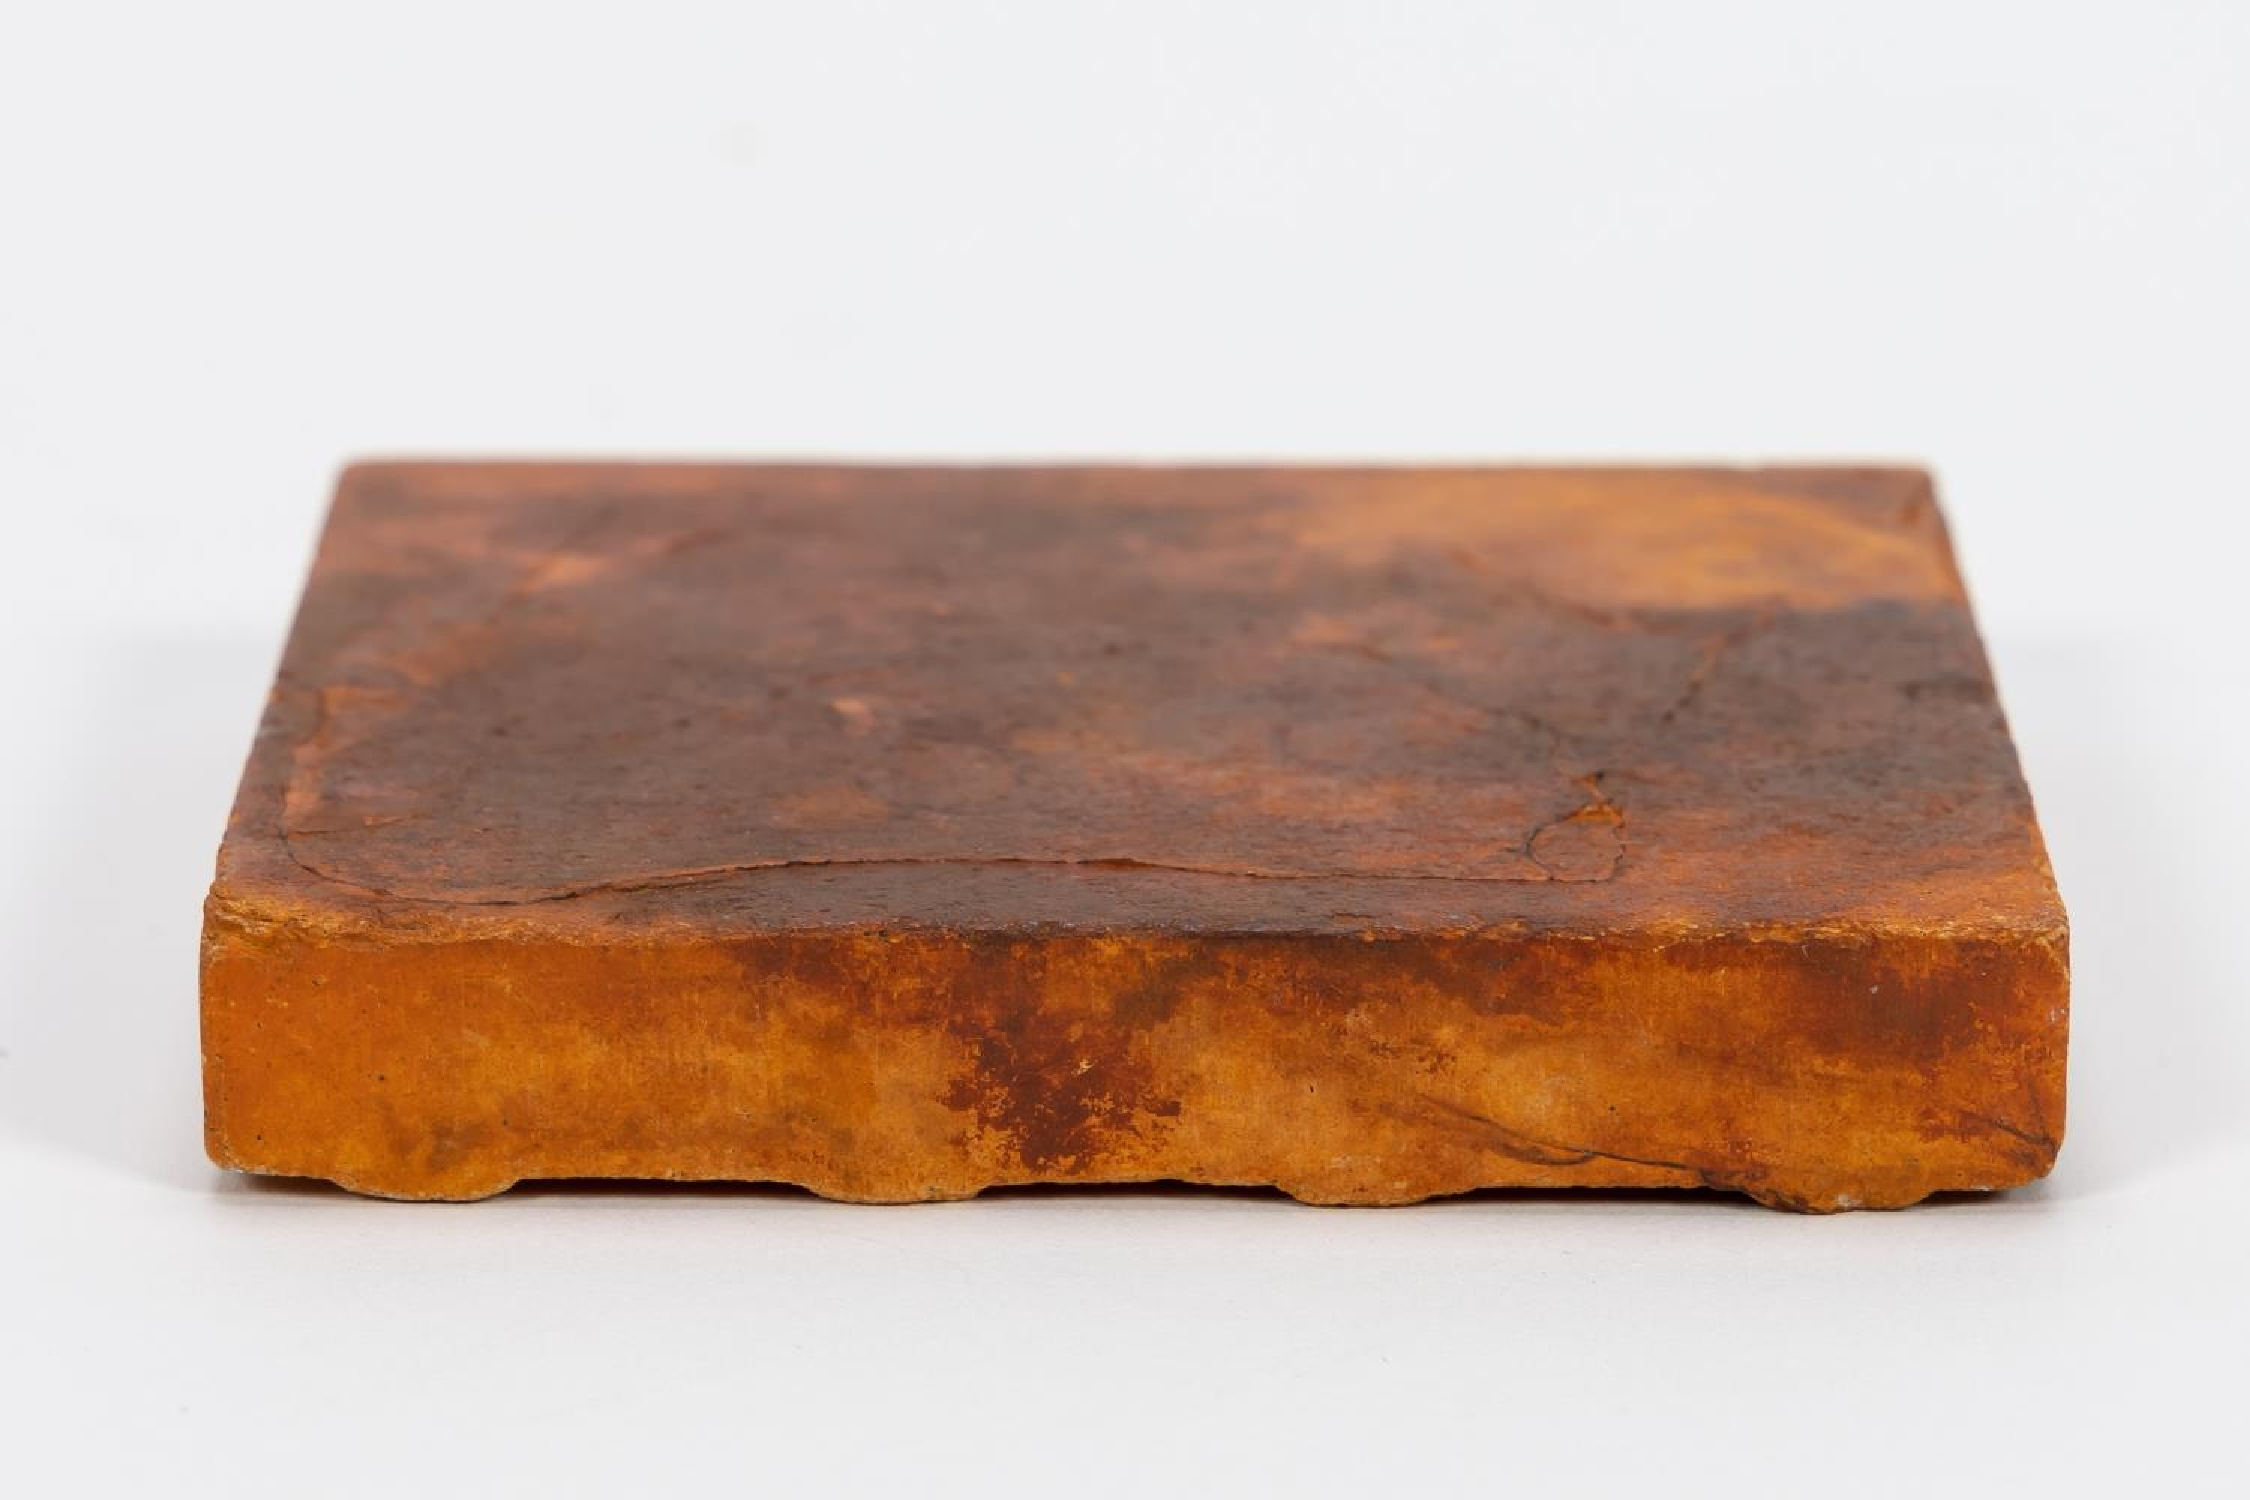 RMS CARPATHIA, SALVAGED SMALL RED FLOOR TILE - Image 5 of 6